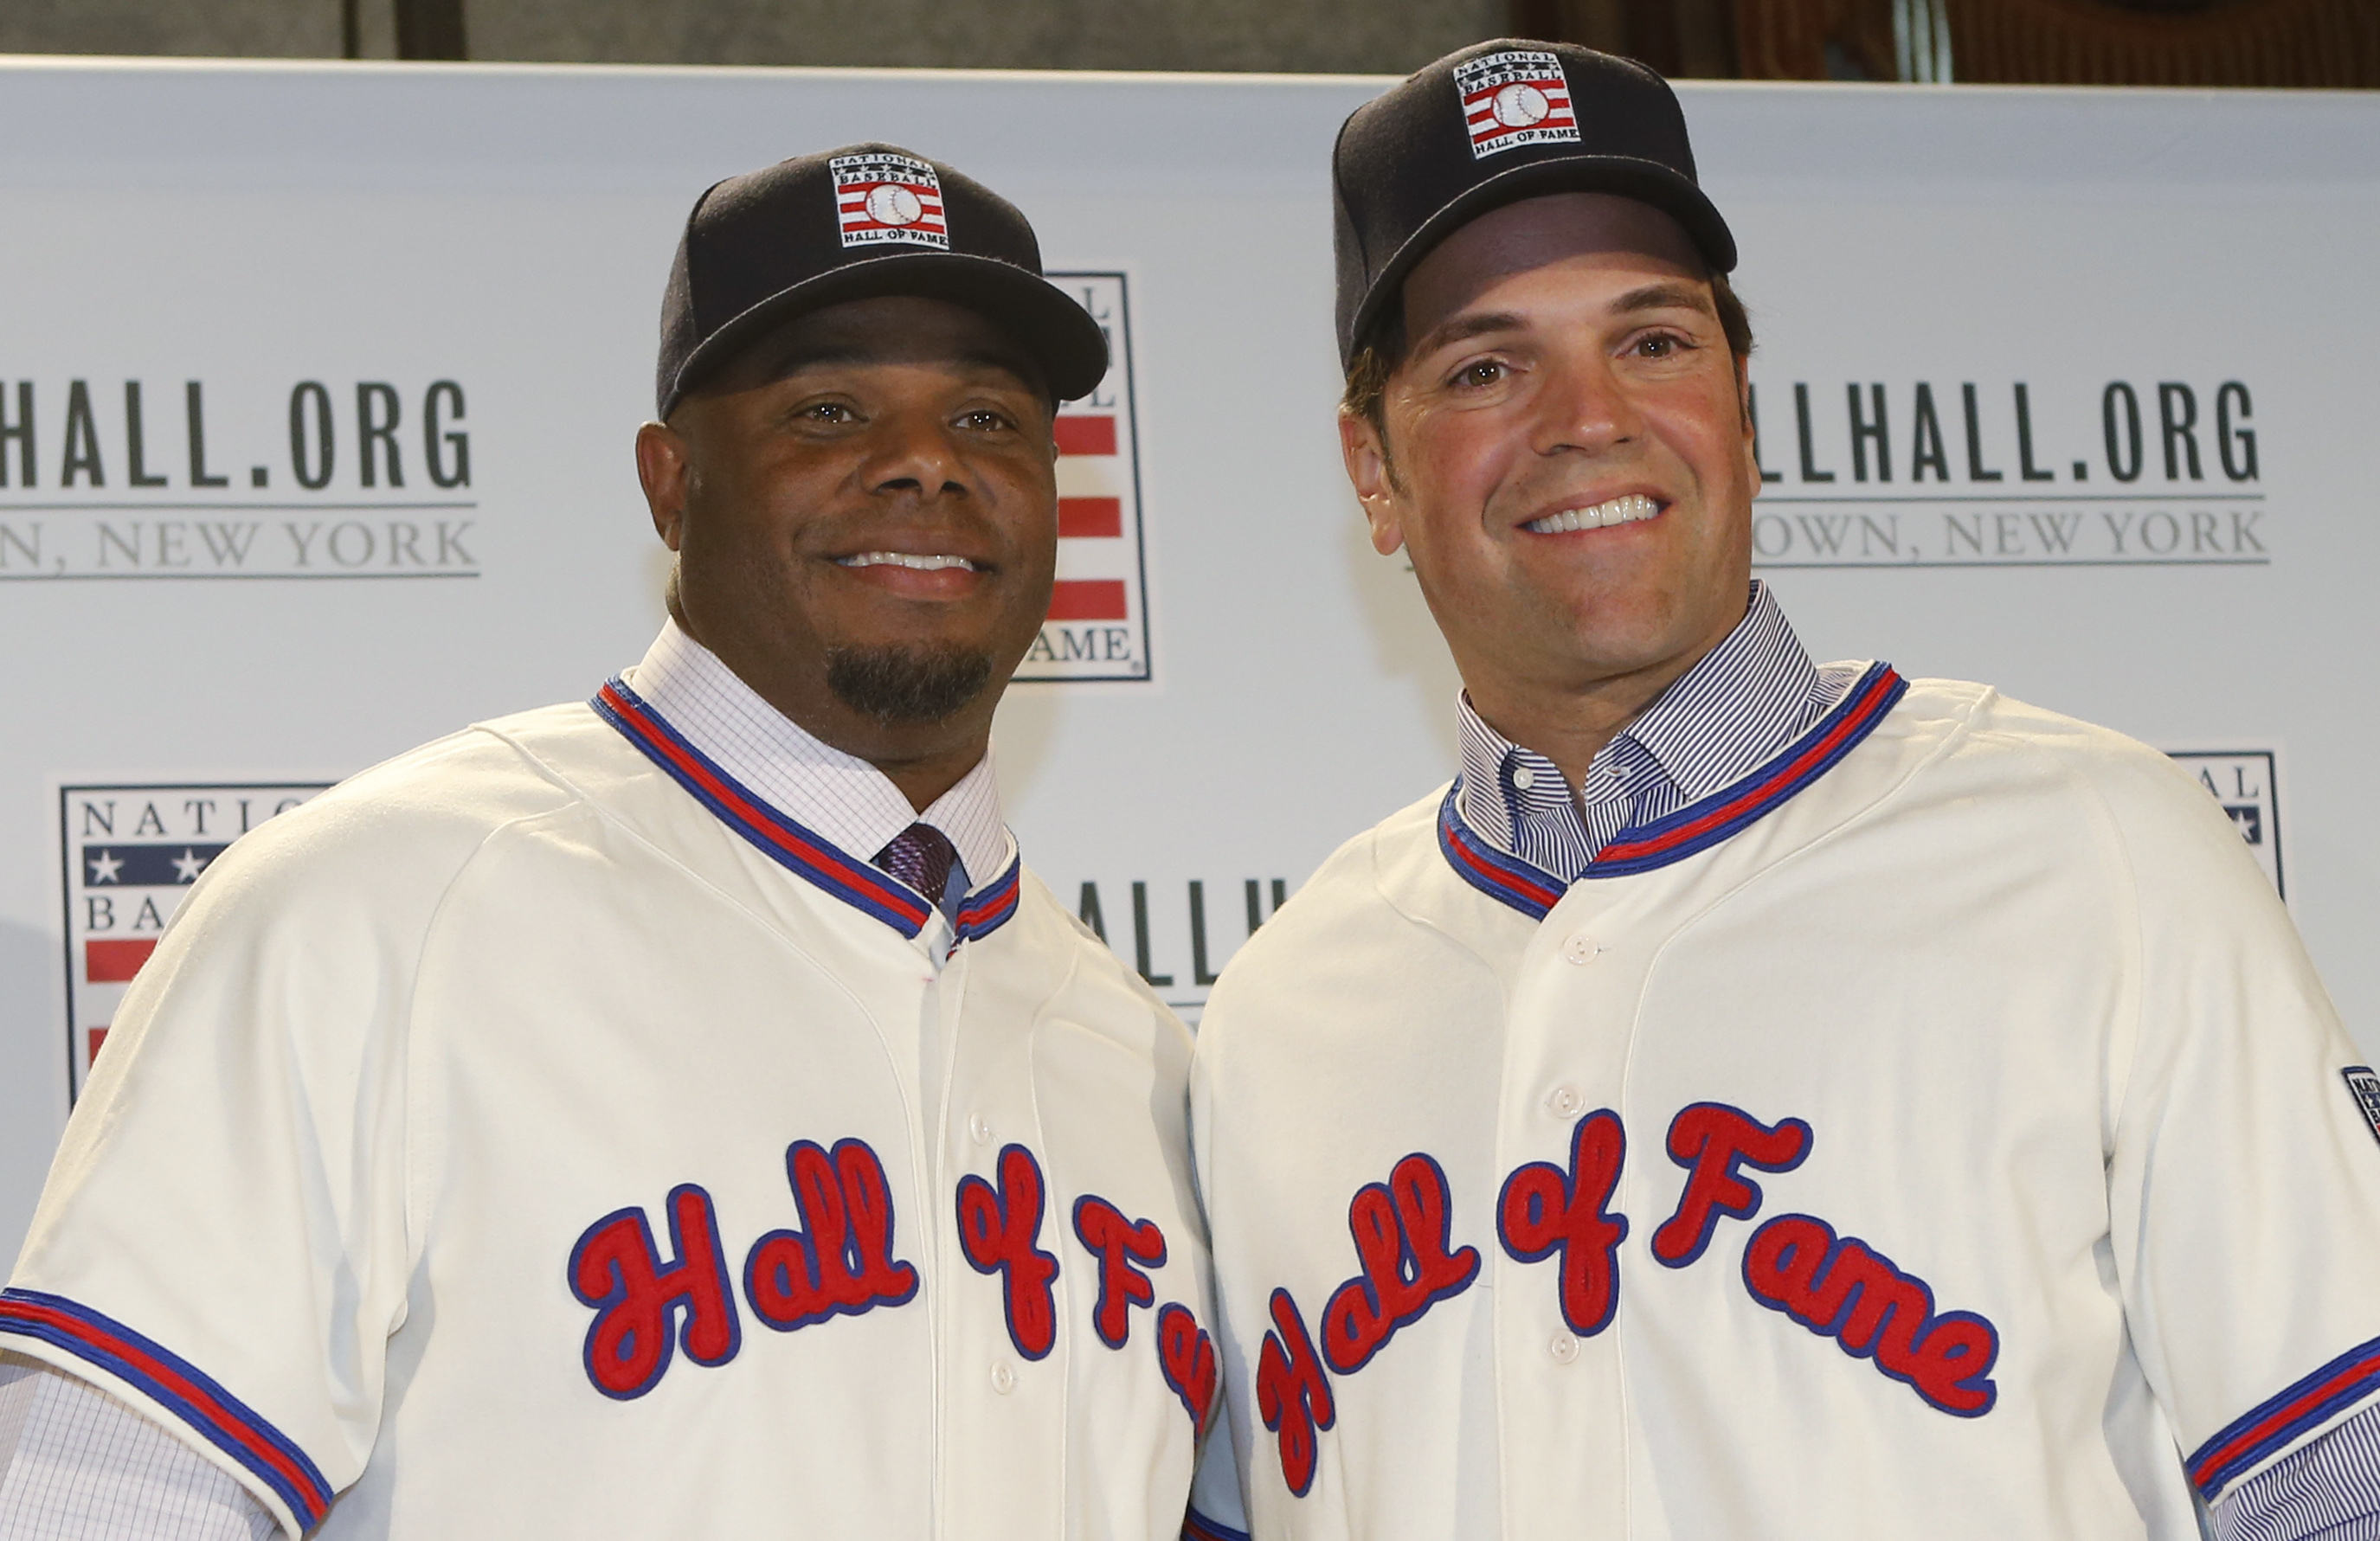 FILE - In this Jan. 7, 2016, file photo, Ken Griffey Jr., left, poses for a photograph with Mike Piazza at a press conference announcing they are both elected into the 2016 National Baseball Hall of Fame, in New York. The Seattle Mariners made Ken Griffey